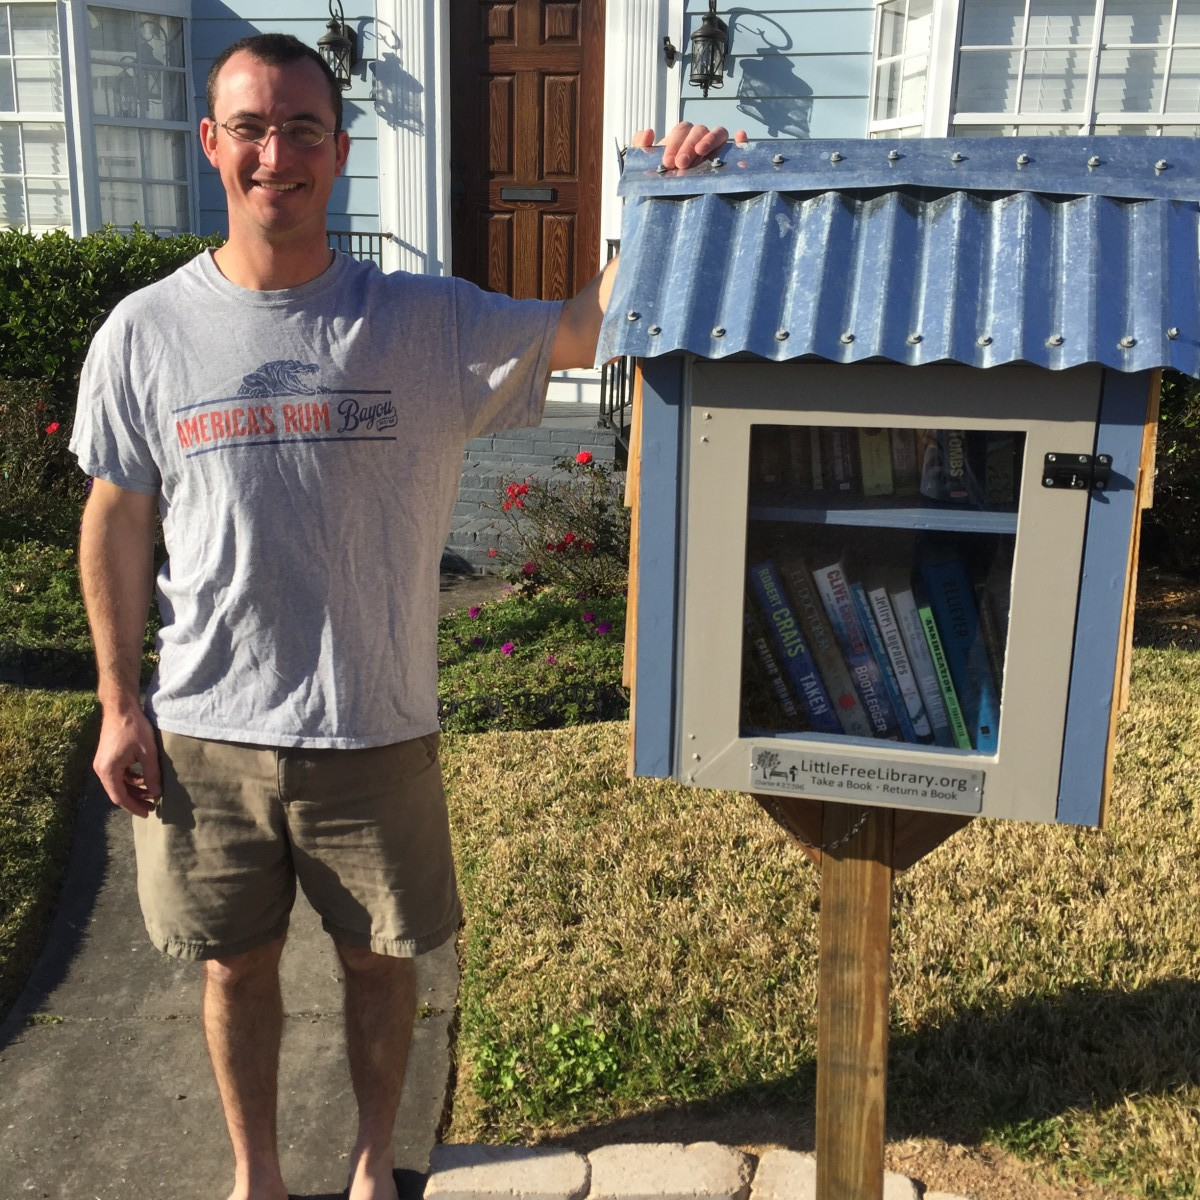 Joe Torcivia with the library box in front of his home on Woodruff.